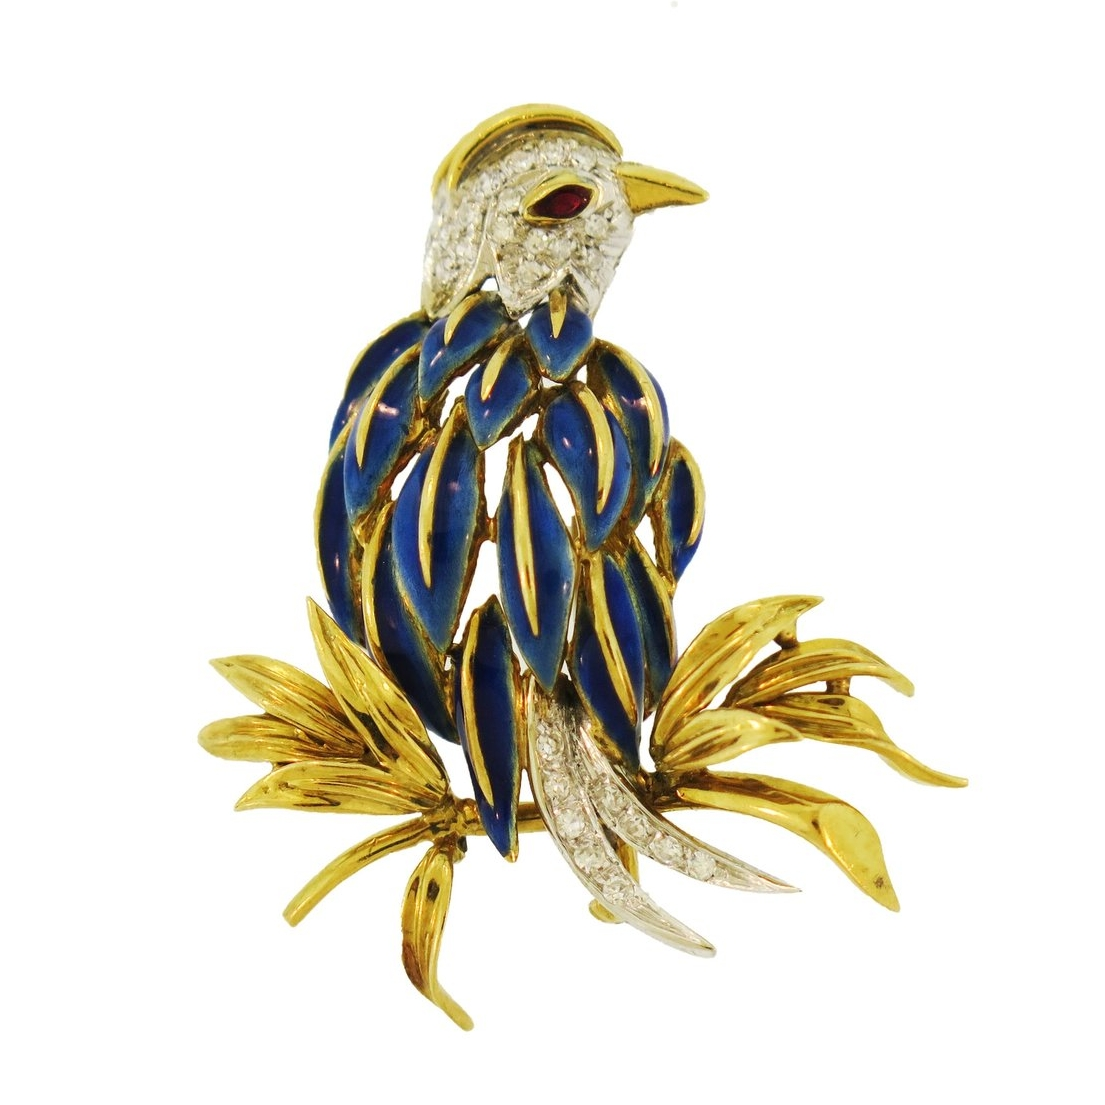 Tiffany & Co. Enamel & Diamond Bird